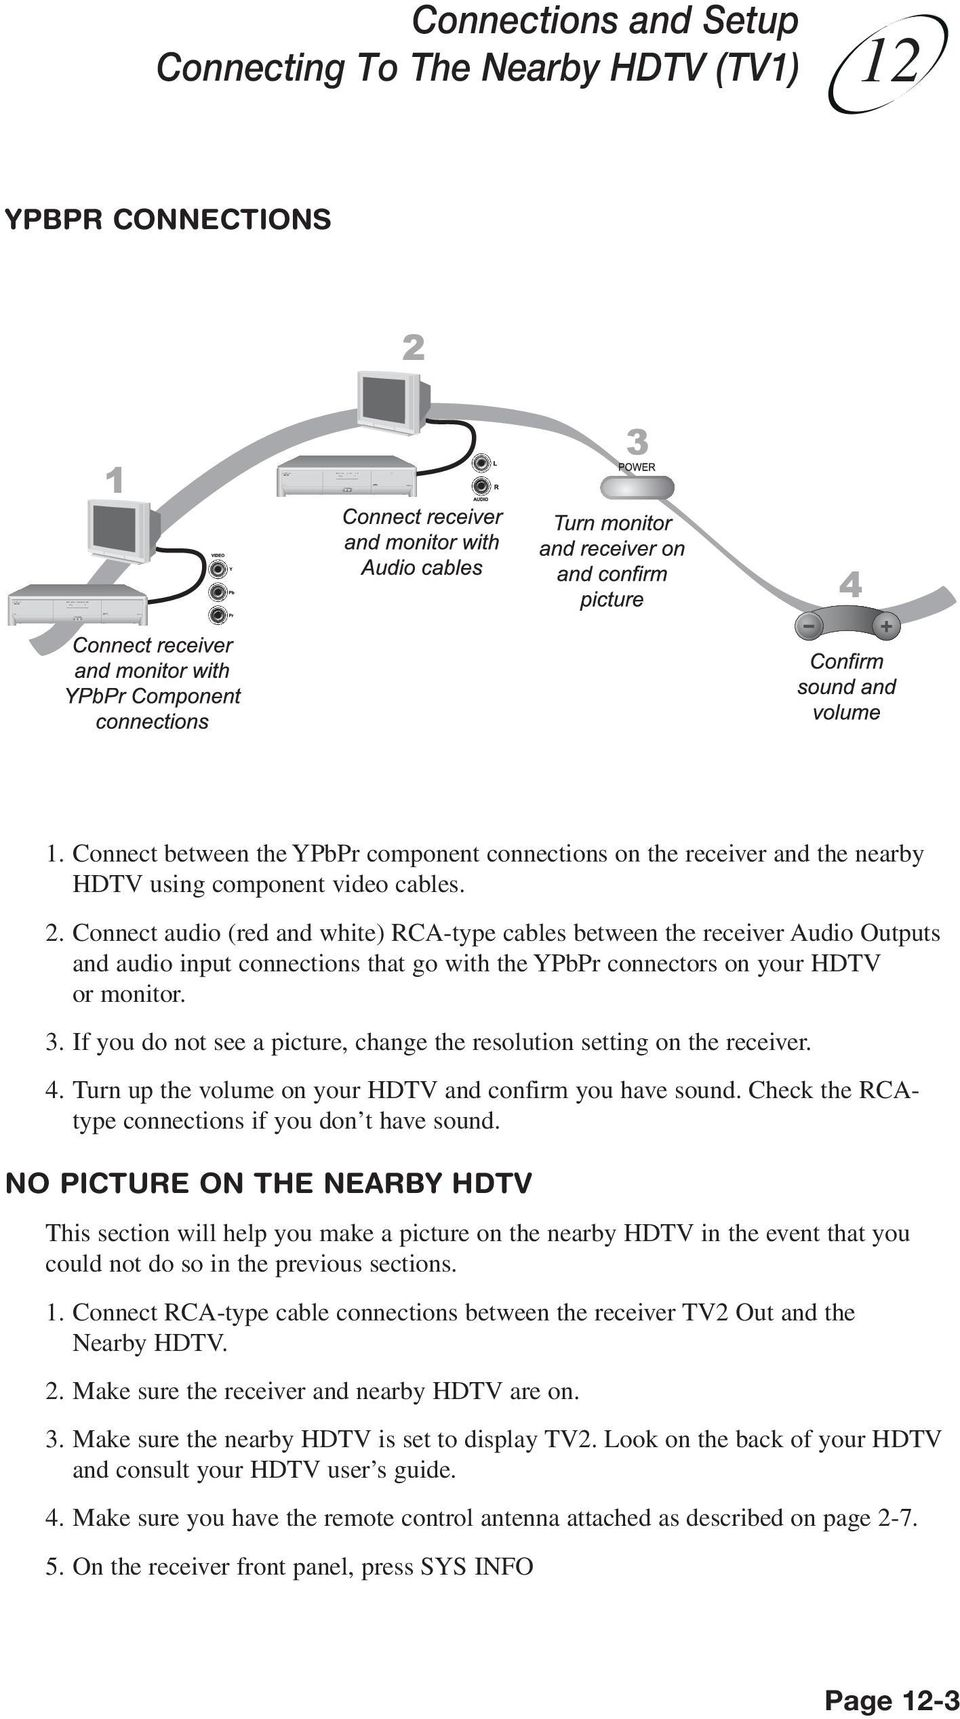 If you do not see a picture, change the resolution setting on the receiver. 4. Turn up the volume on your HDTV and confirm you have sound. Check the RCAtype connections if you don t have sound.